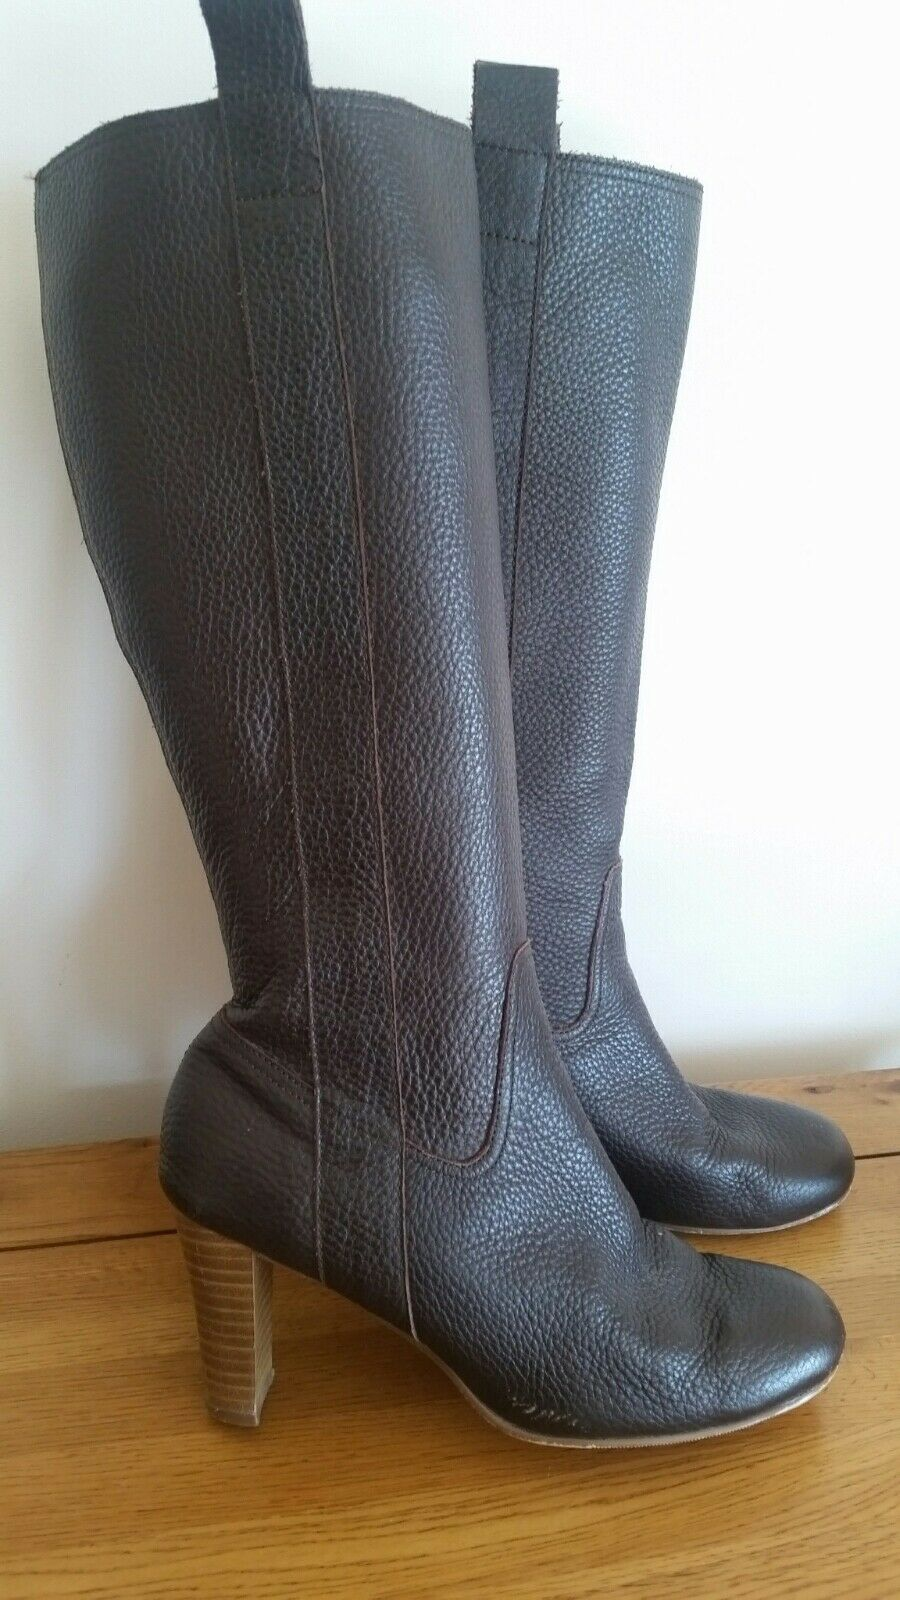 M&S brown leather knee high boots UK 6.5 Marks & Spencer 40